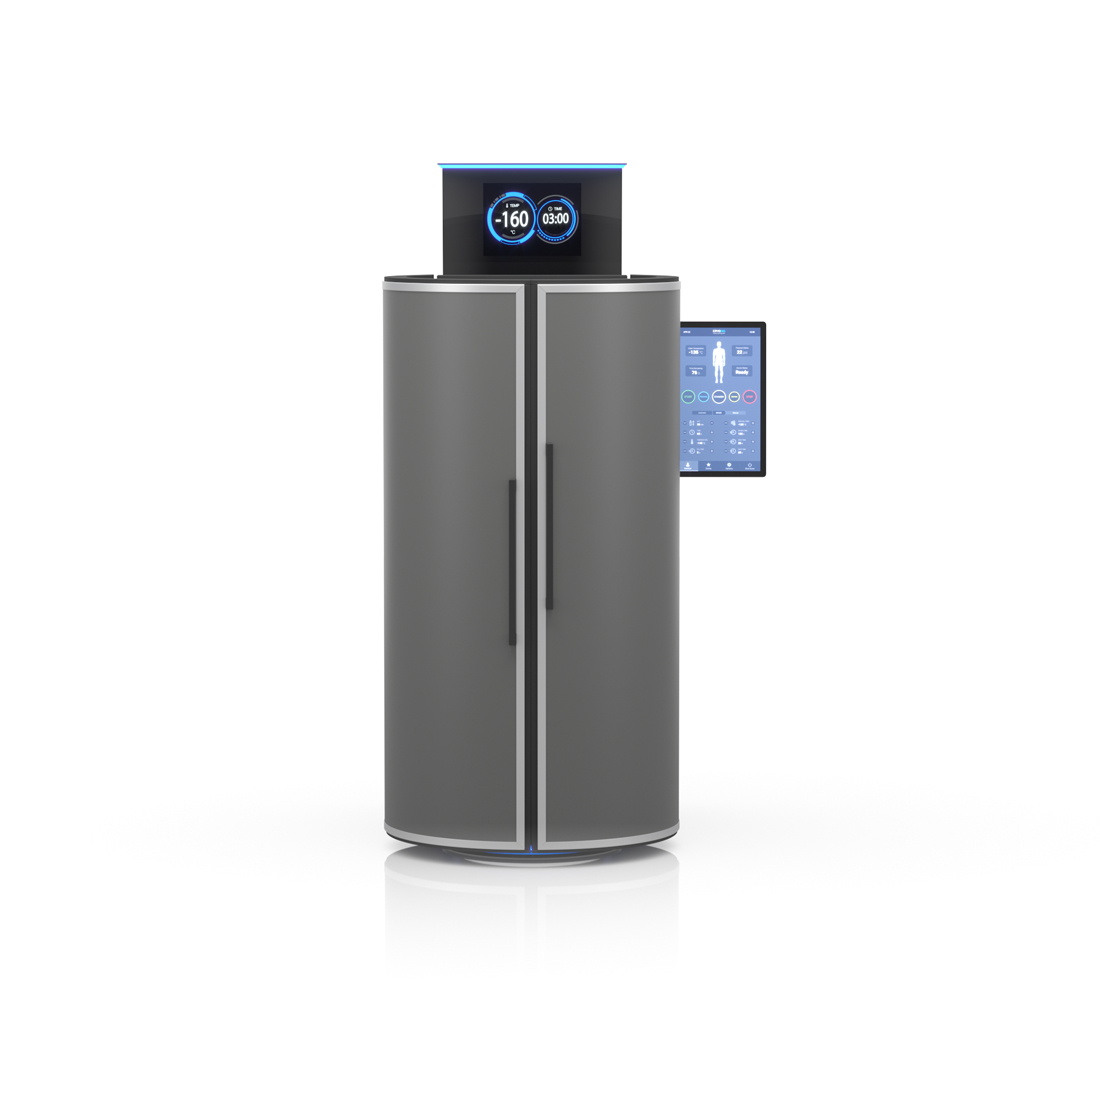 CRYO XC™ Cryocabin in anthracite gray